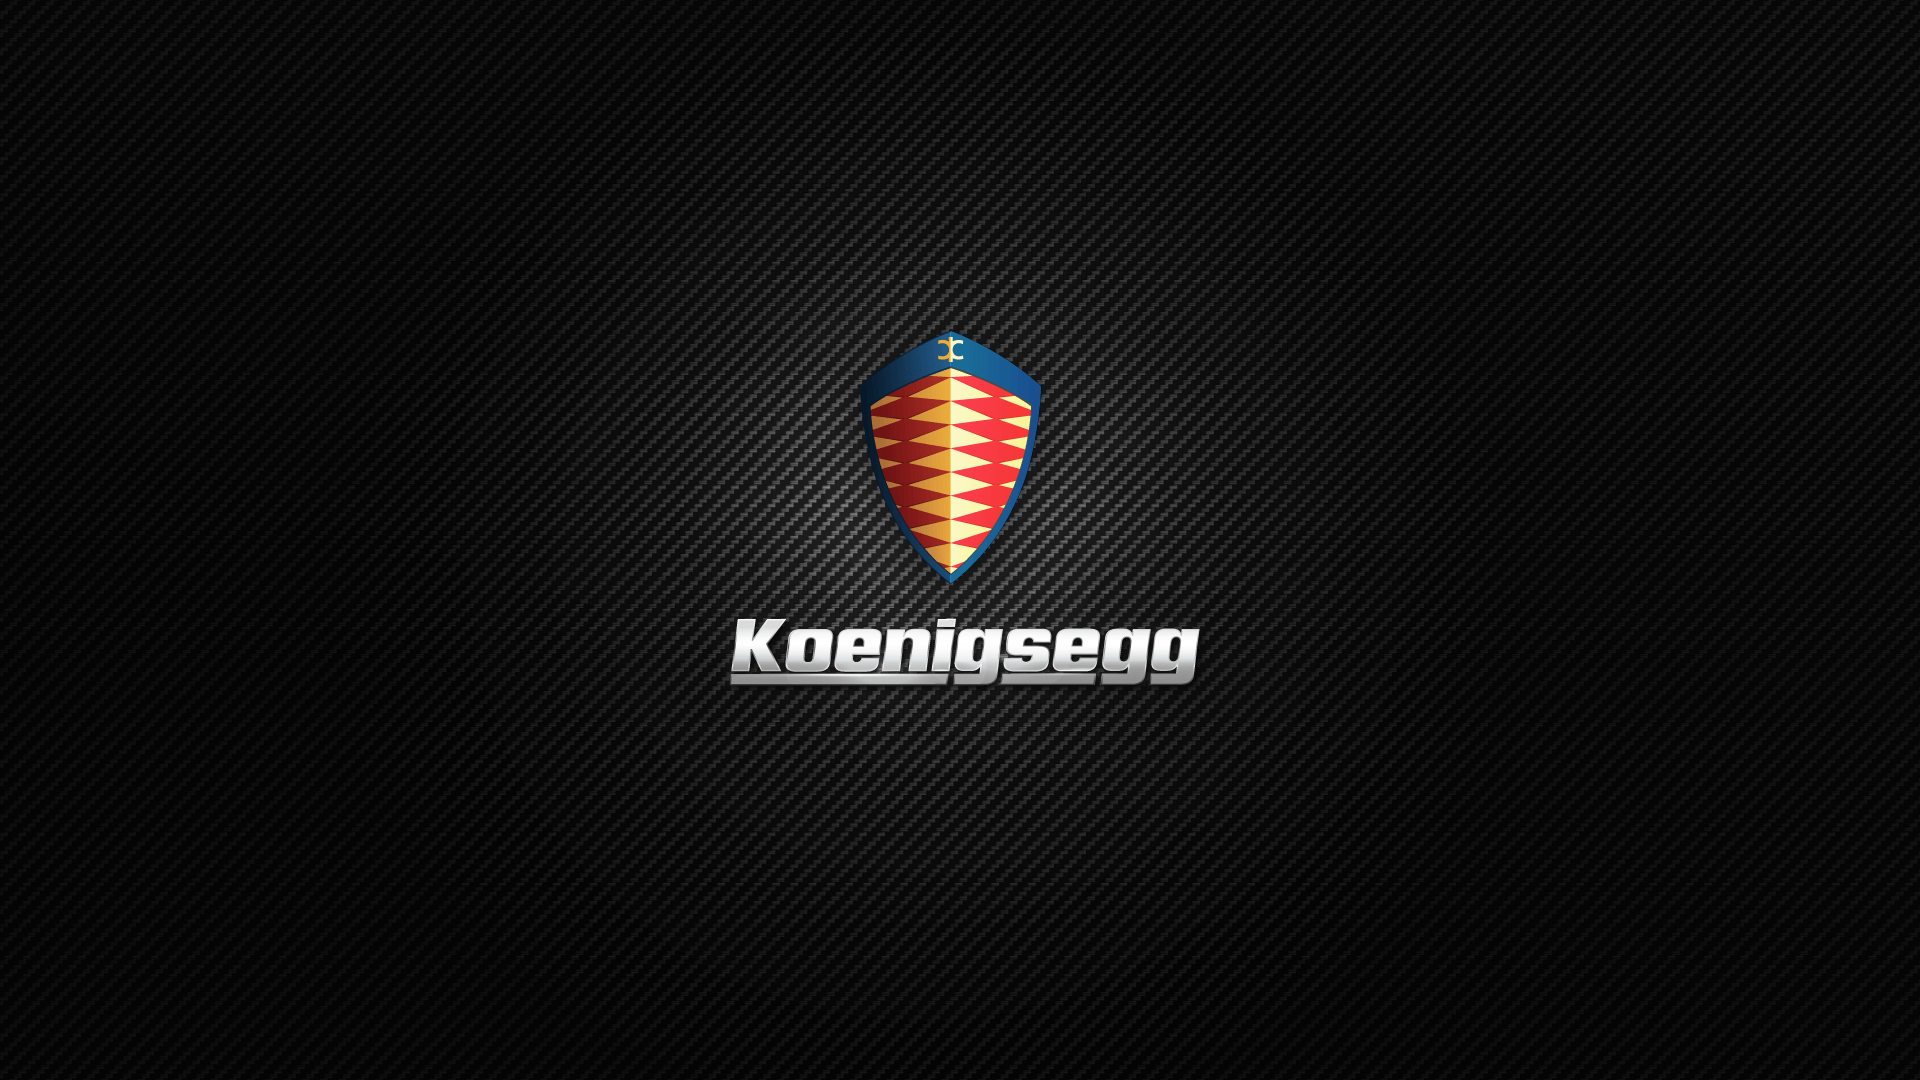 Koenigsegg Logo Wallpapers Wallpaper Cave